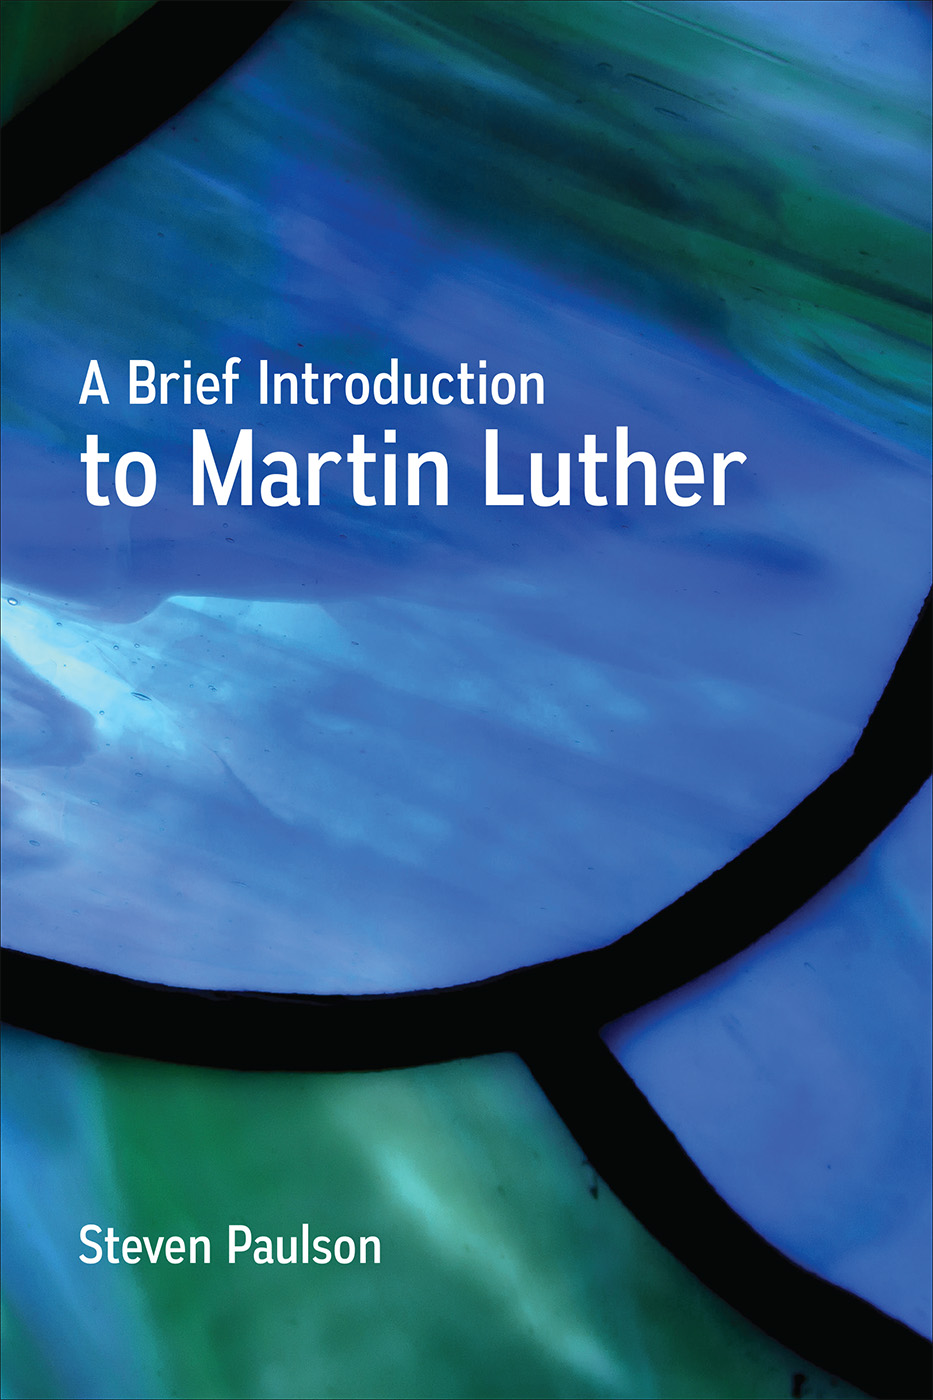 A Brief Introduction to Martin Luther